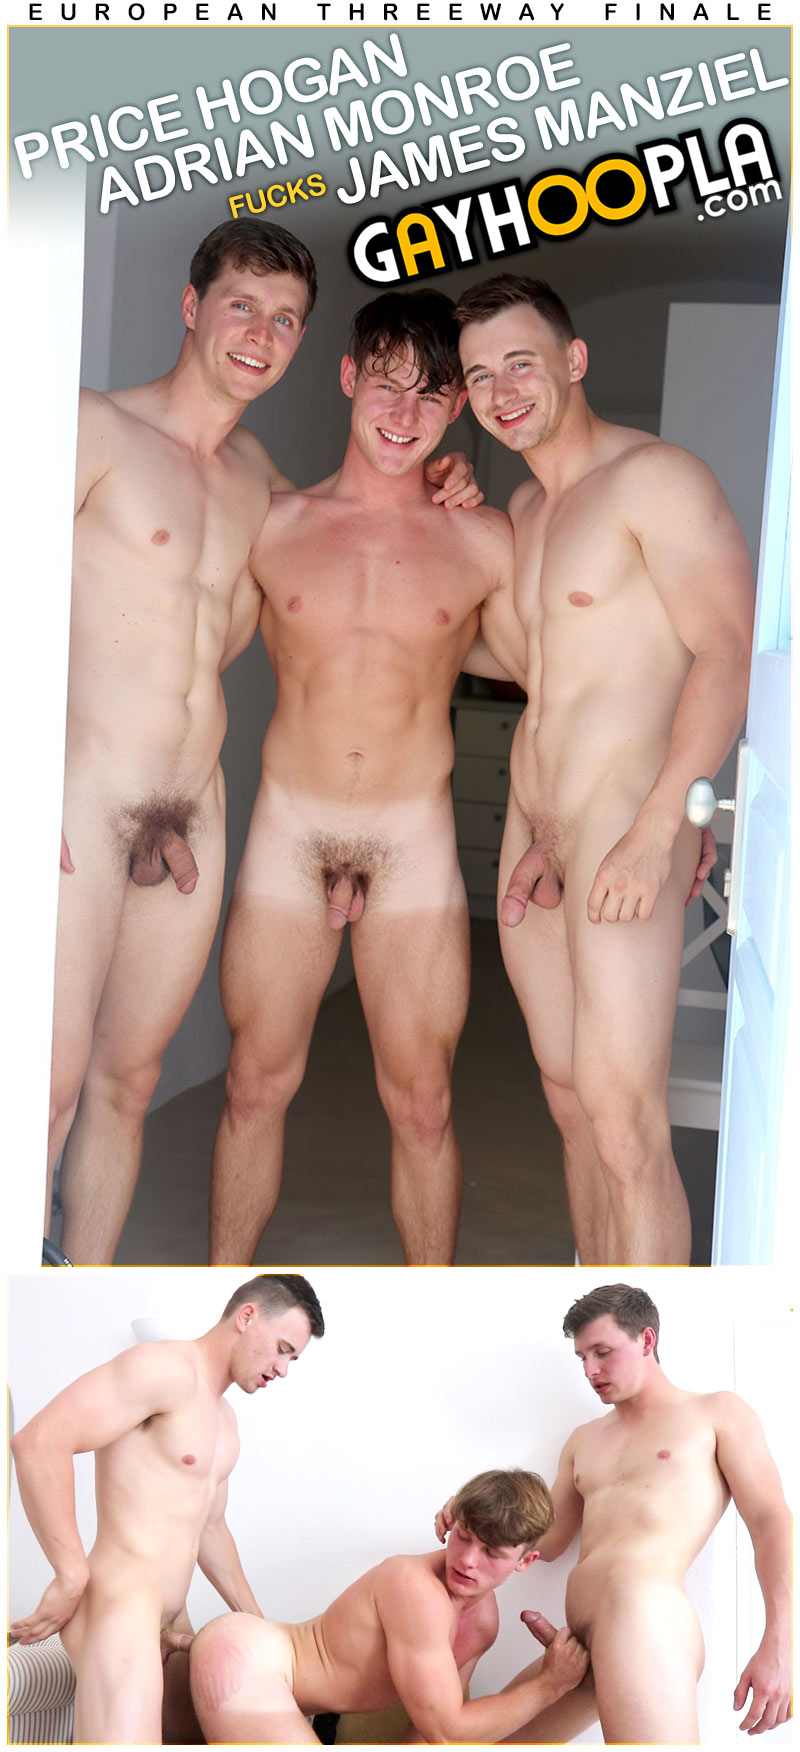 Threesome Finale In Europe (Price Hogan, Adrian Monroe and James Manziel) at GayHoopla